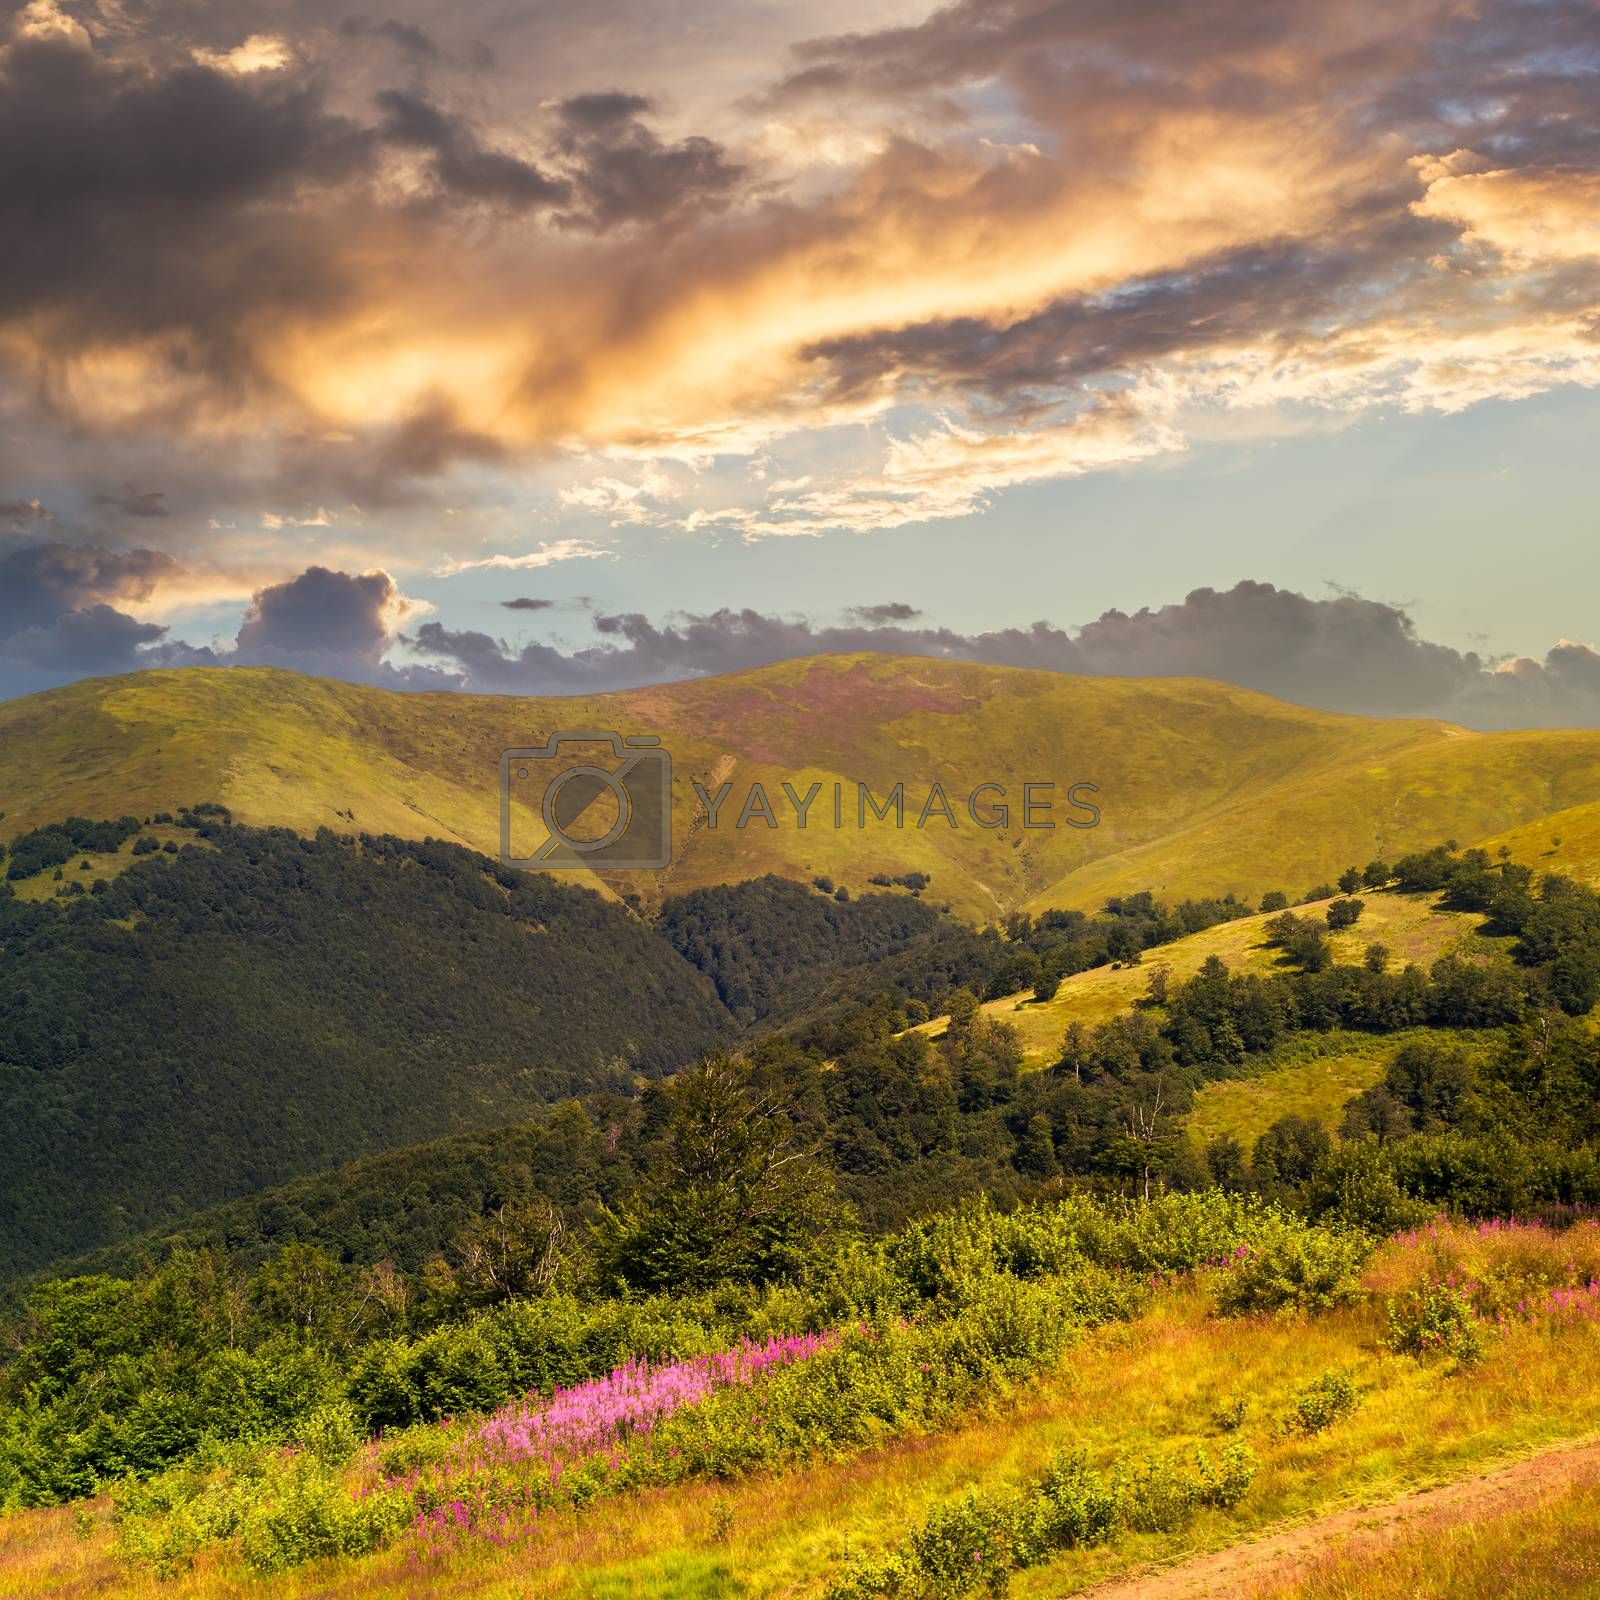 high wild plants at the mountain top at sunset by Pellinni